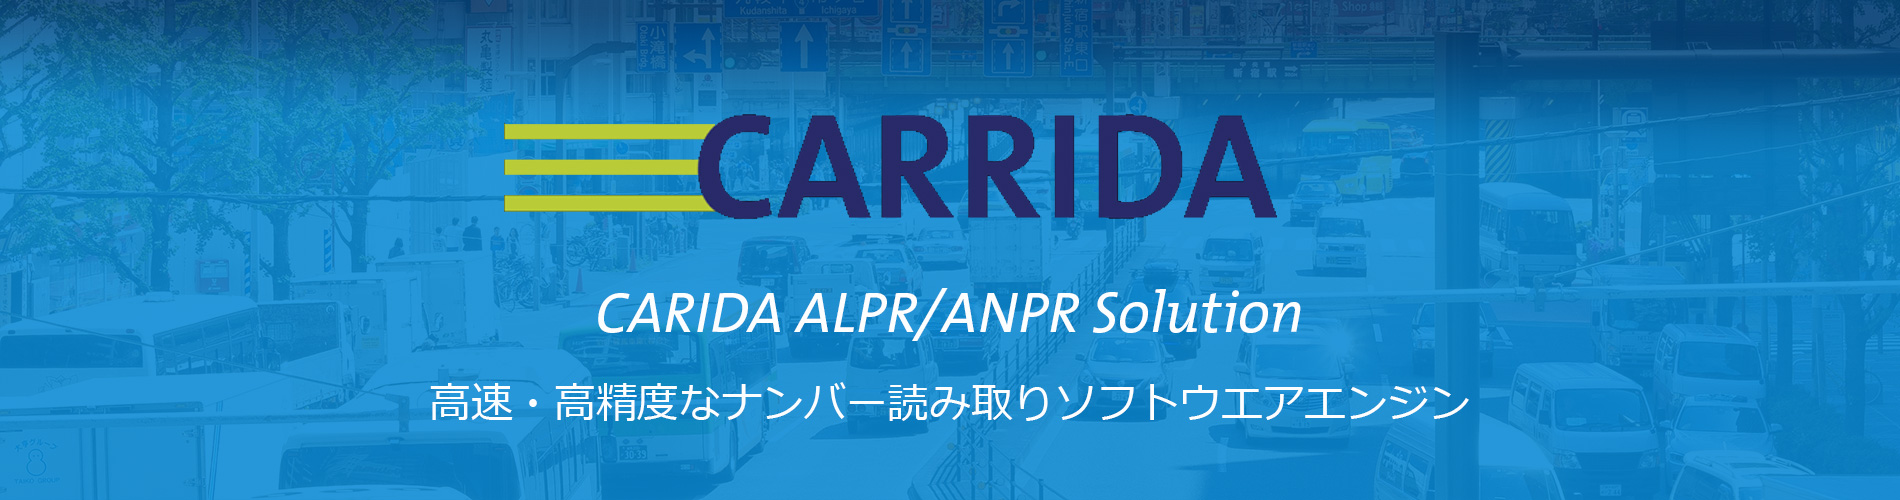 CARRIDA ALPR/ANPR Solution